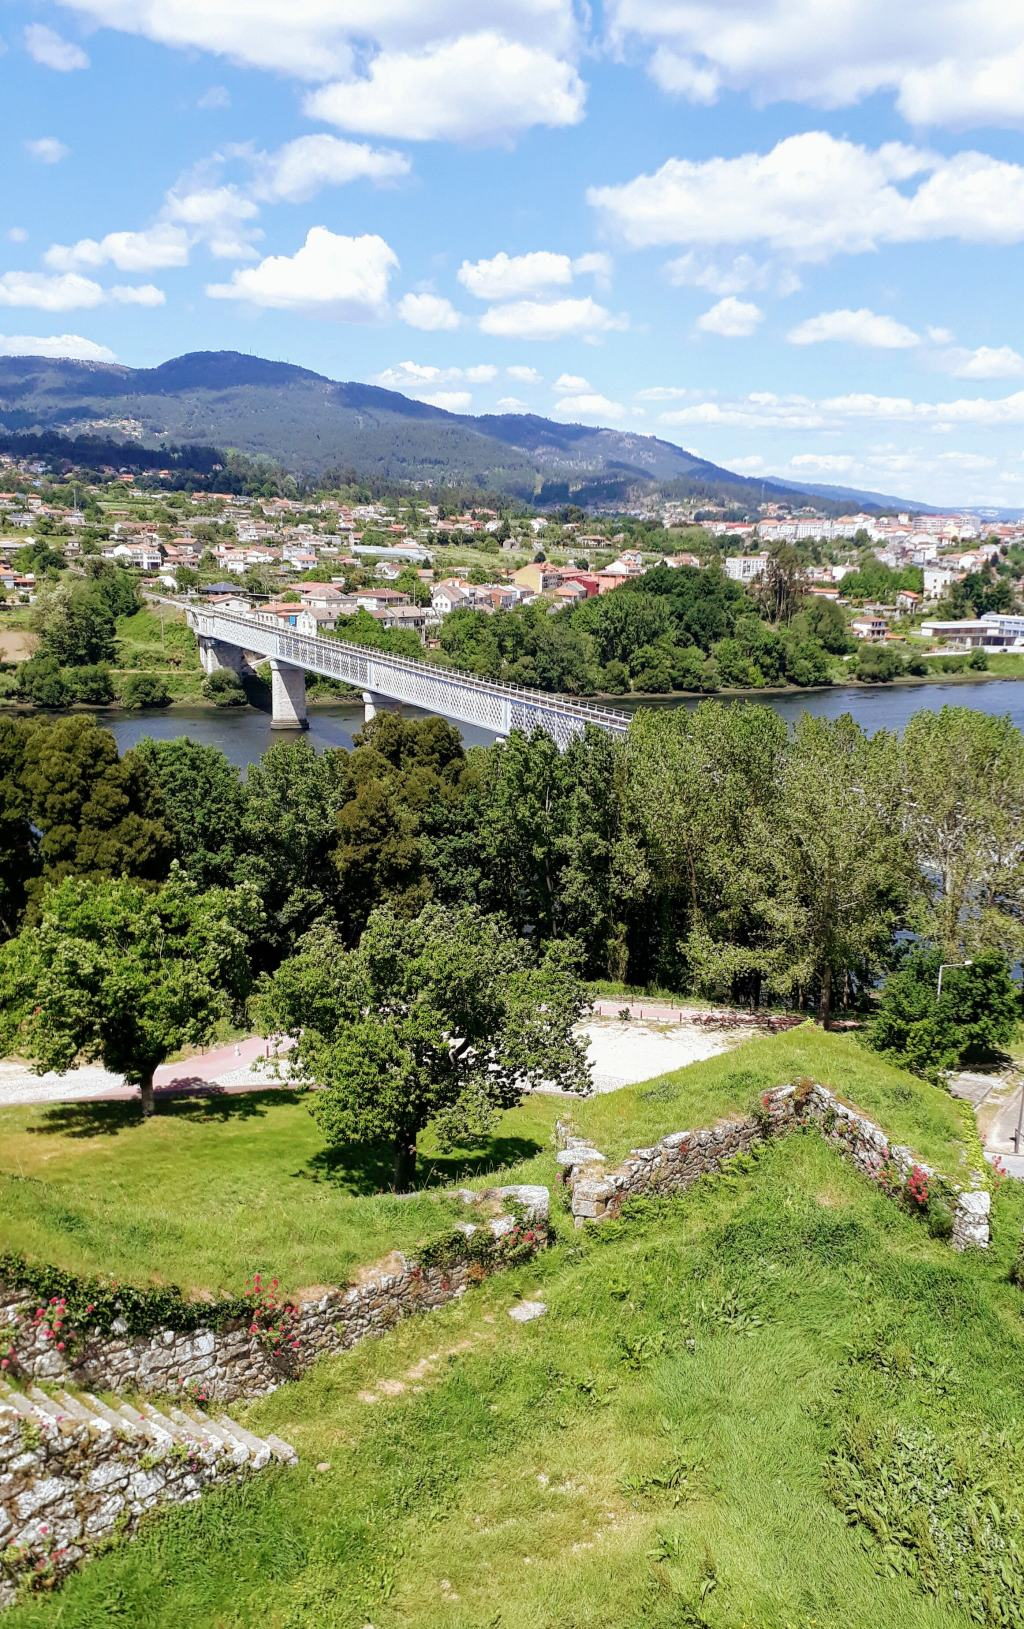 Magnificent view of the Ponte Internacional from Valença